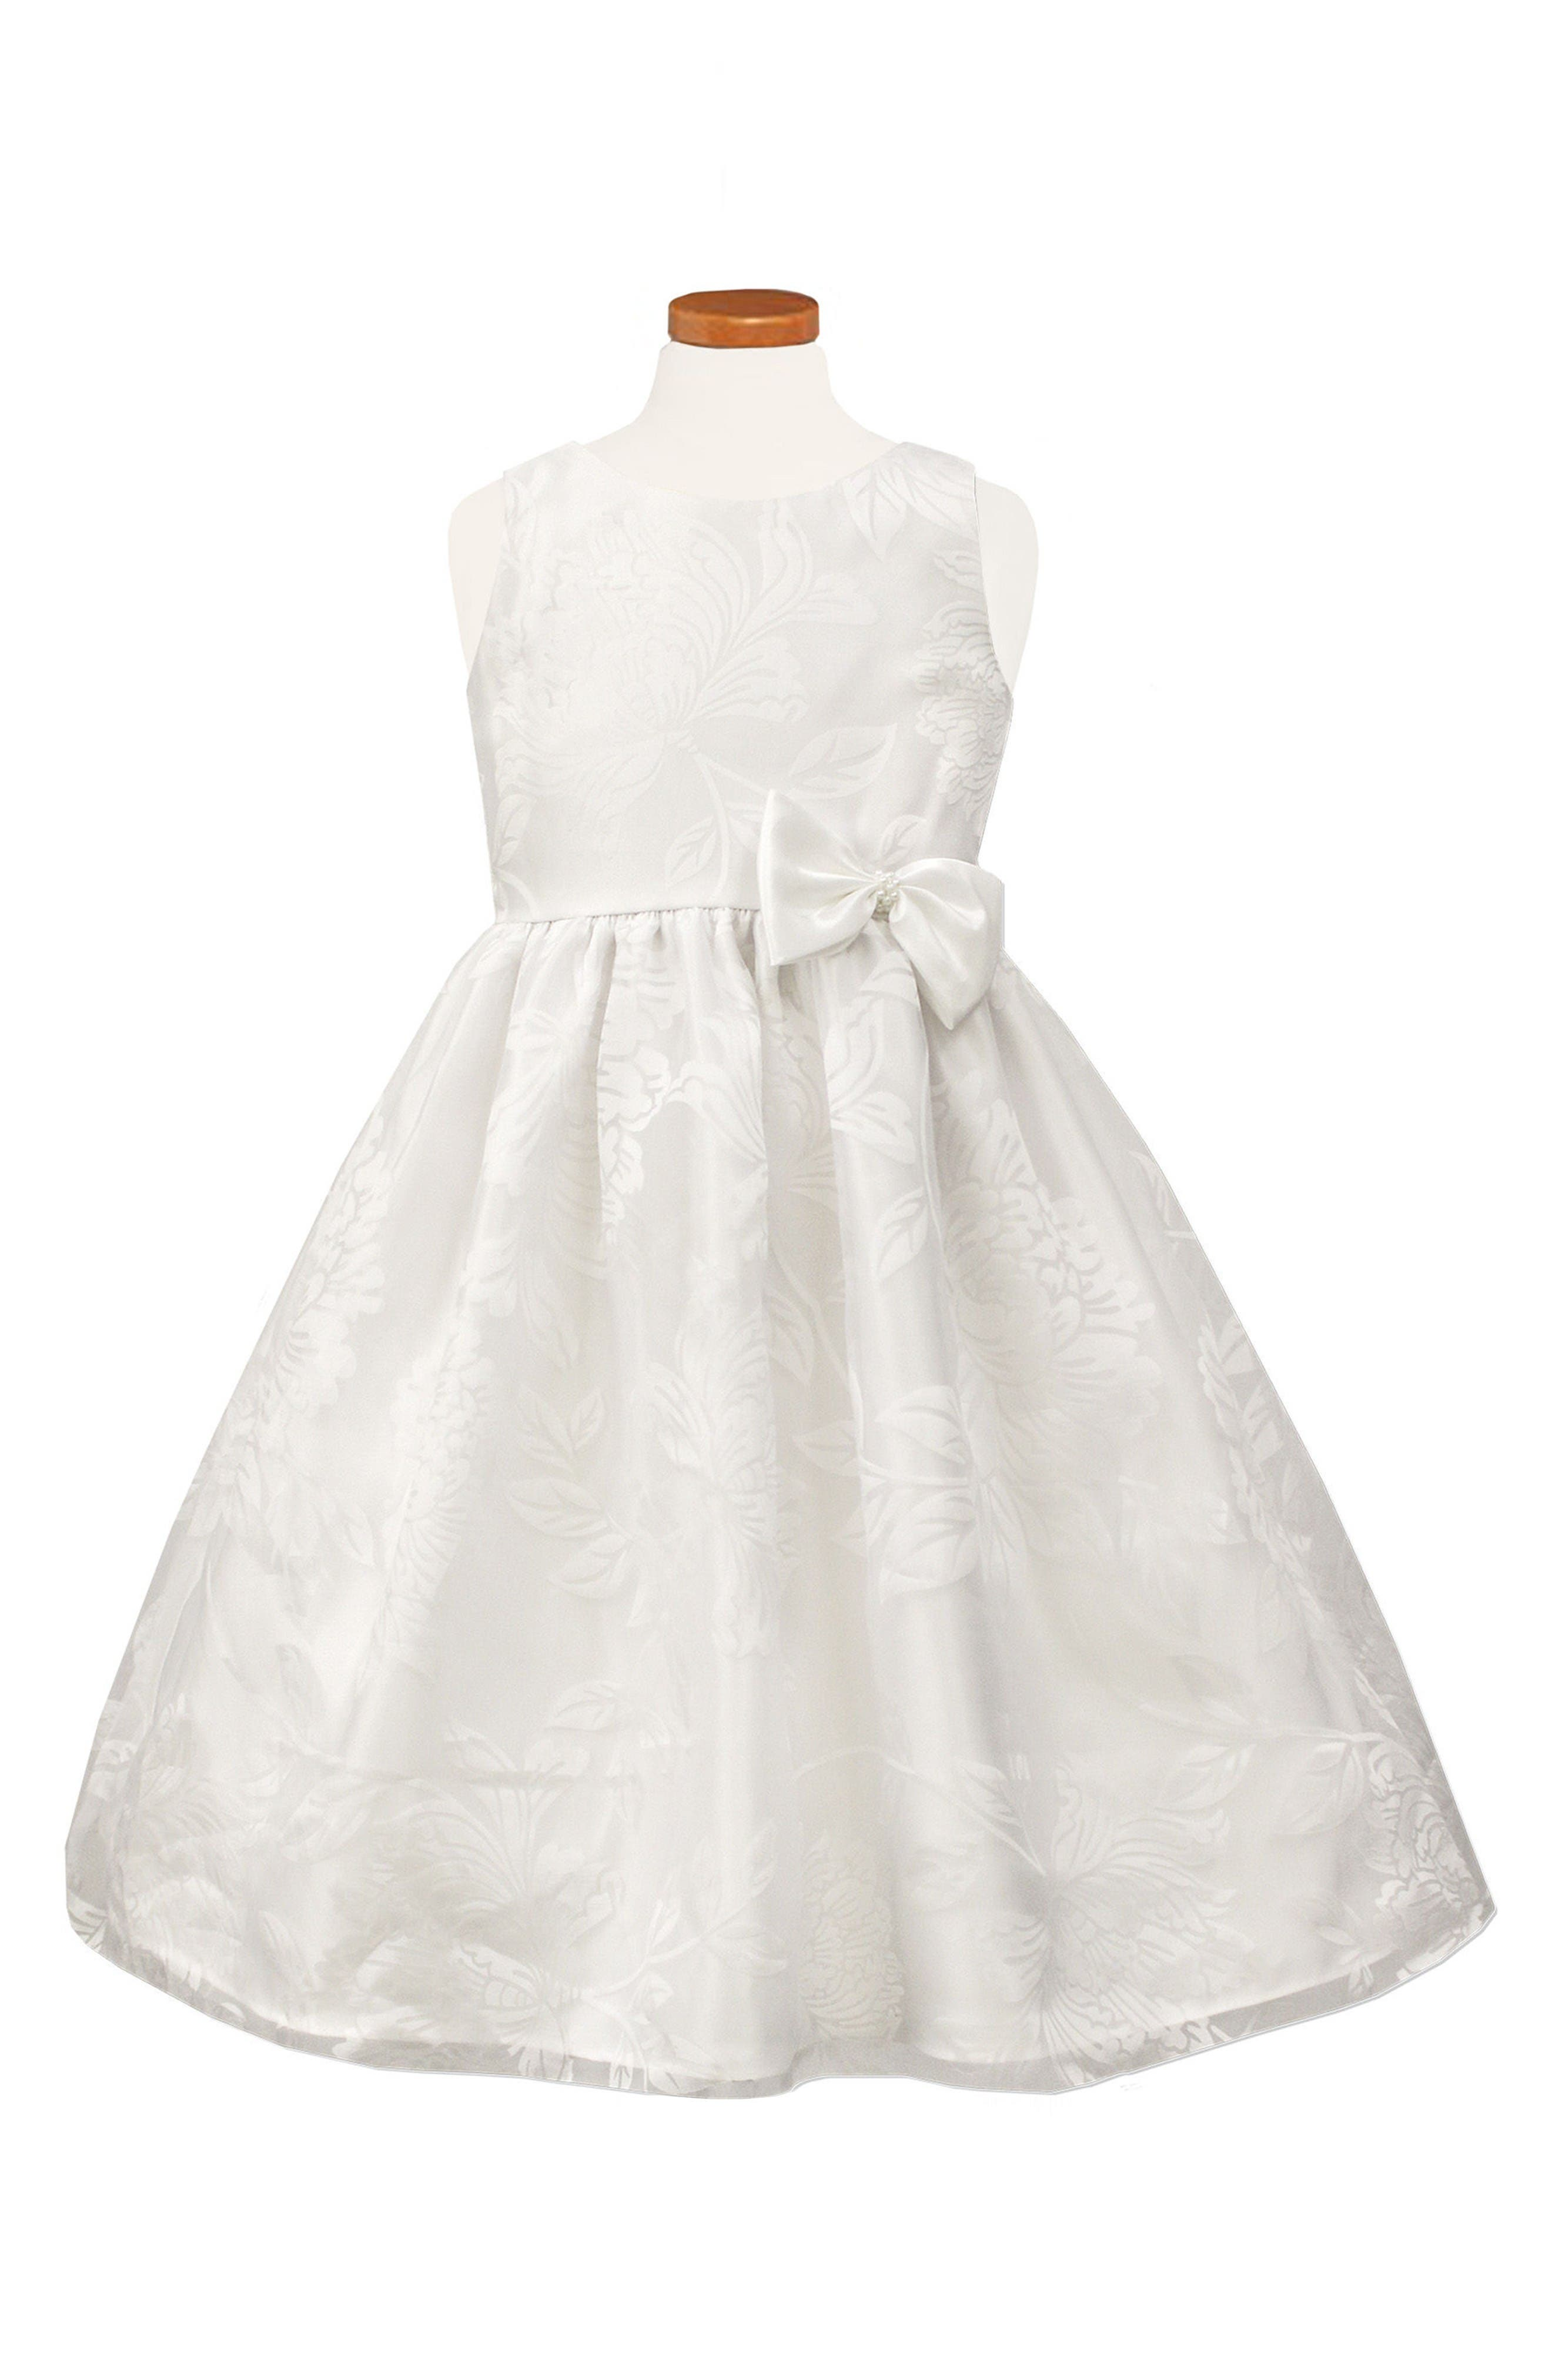 Main Image - Sorbet Floral Burnout Organza Dress (Toddler Girls, Little Girls & Big Girls)